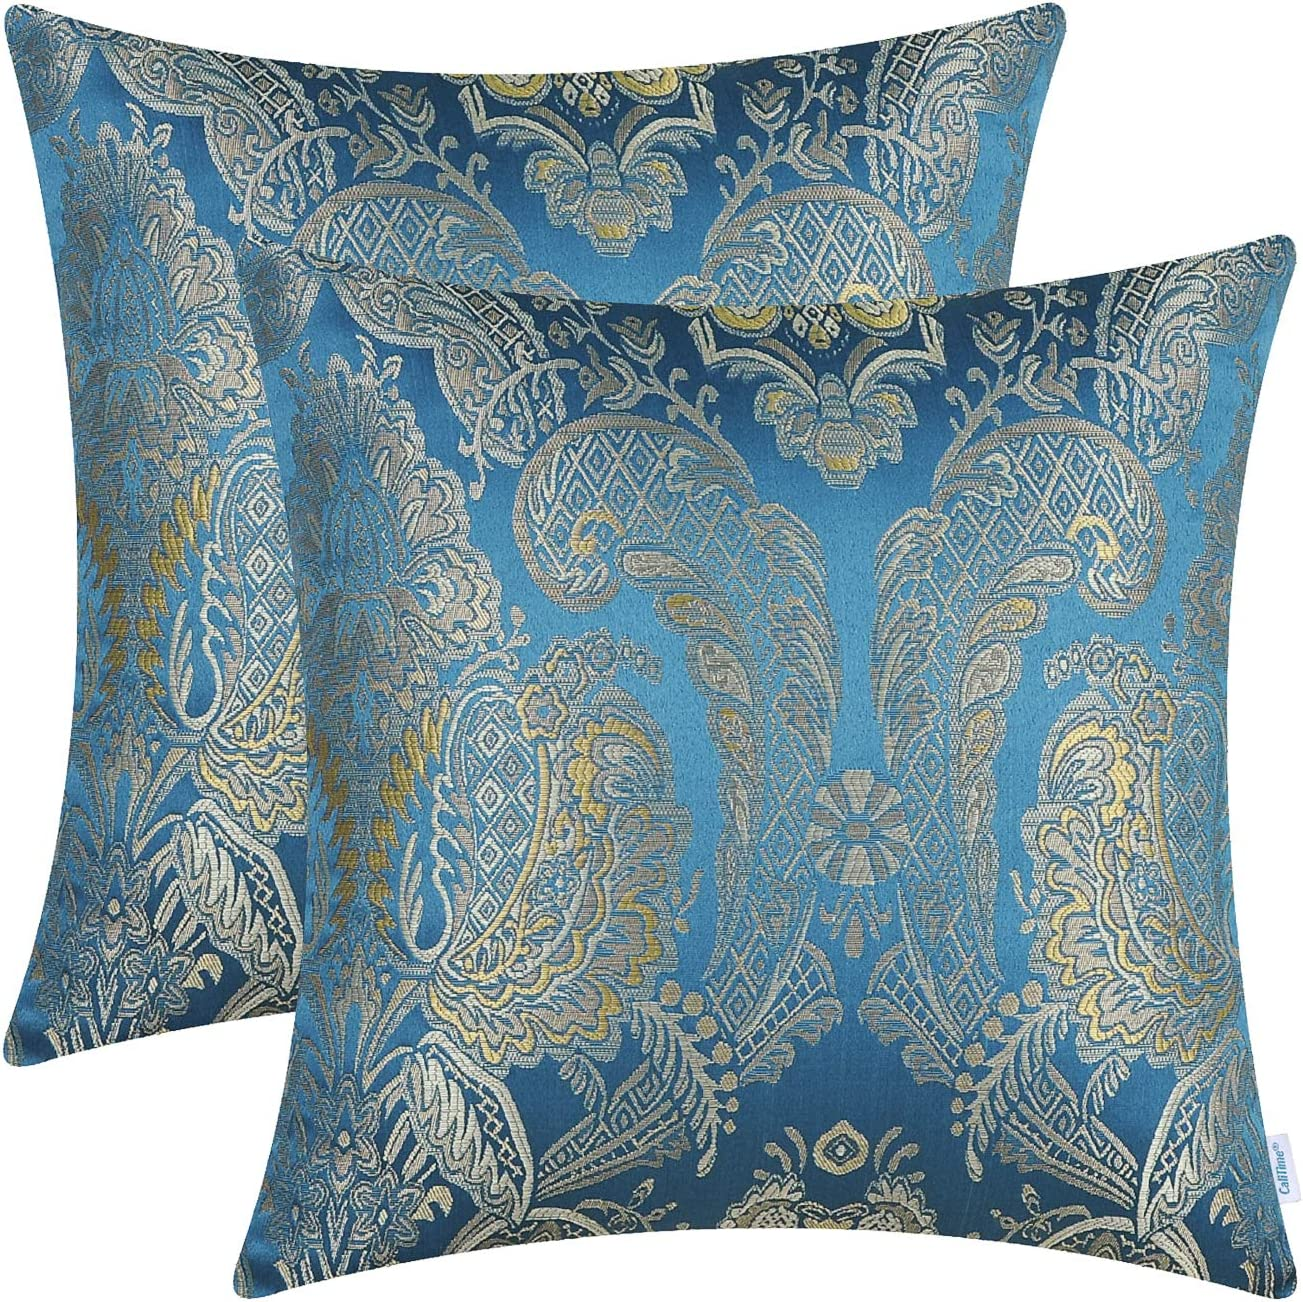 CaliTime Pack of 2 Supersoft Throw Pillow Covers Cases for Couch Sofa Home Decor Vintage Damask Floral 18 X 18 Inches Seaport Blue